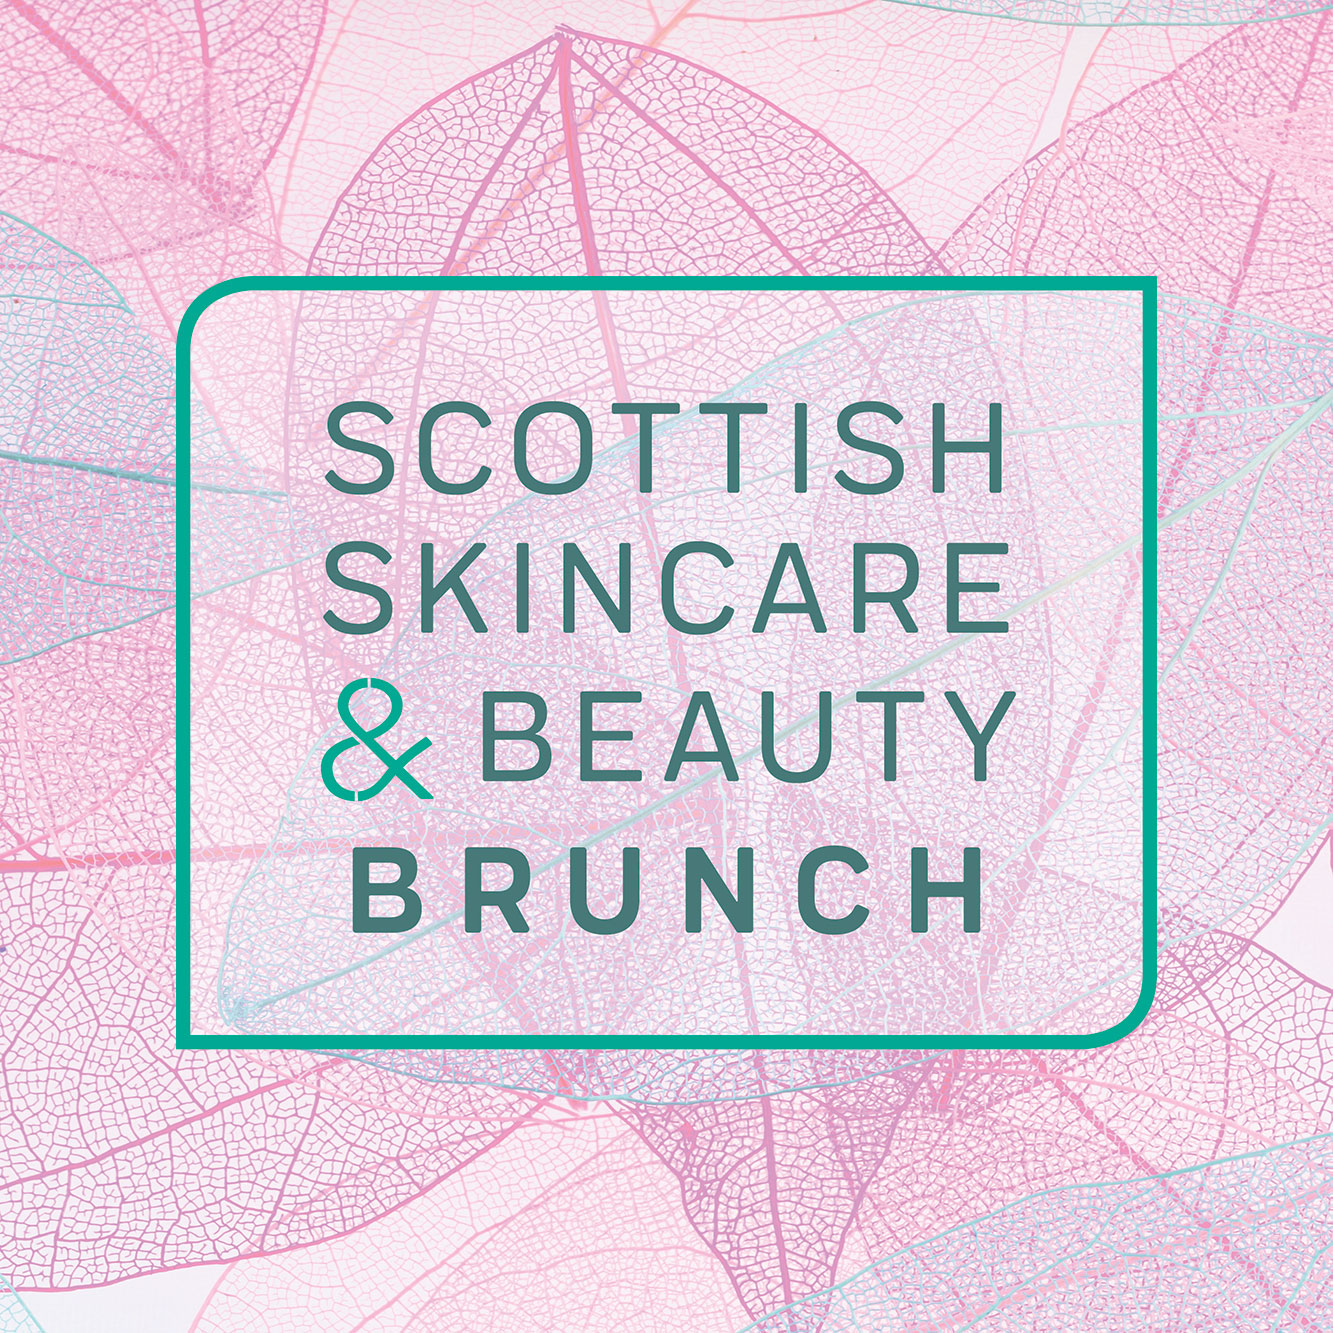 Scottish Skincare & Beauty Brunch